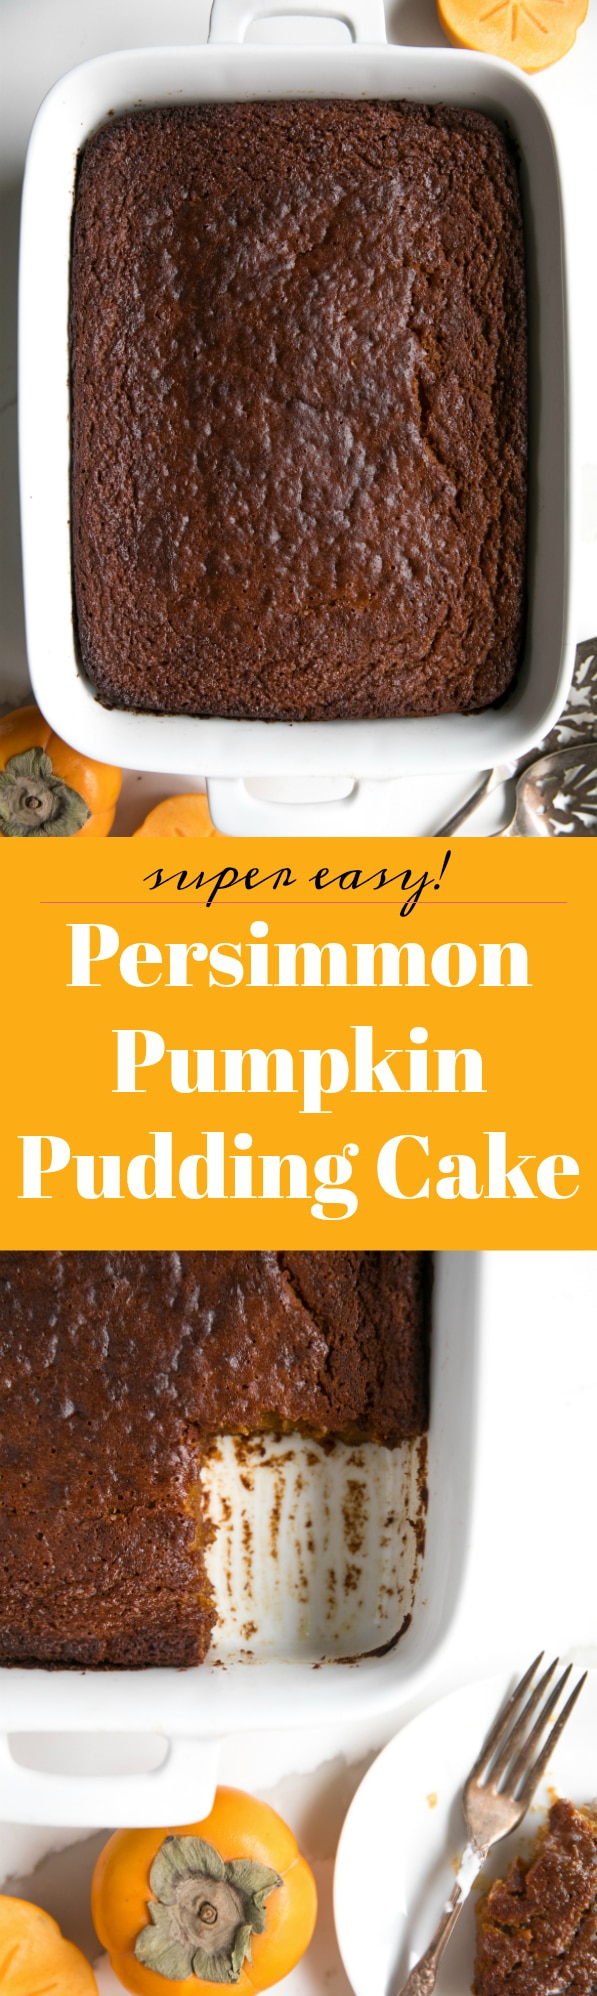 Persimmon Pumpkin Pudding Cake. Basic and humble from the outside, but full of flavor, spice and holiday happiness on the inside. via @theforkedspoon #cake #puddingcake #dessert #persimmon #pumpkin #pumpkincake #easyrecipe